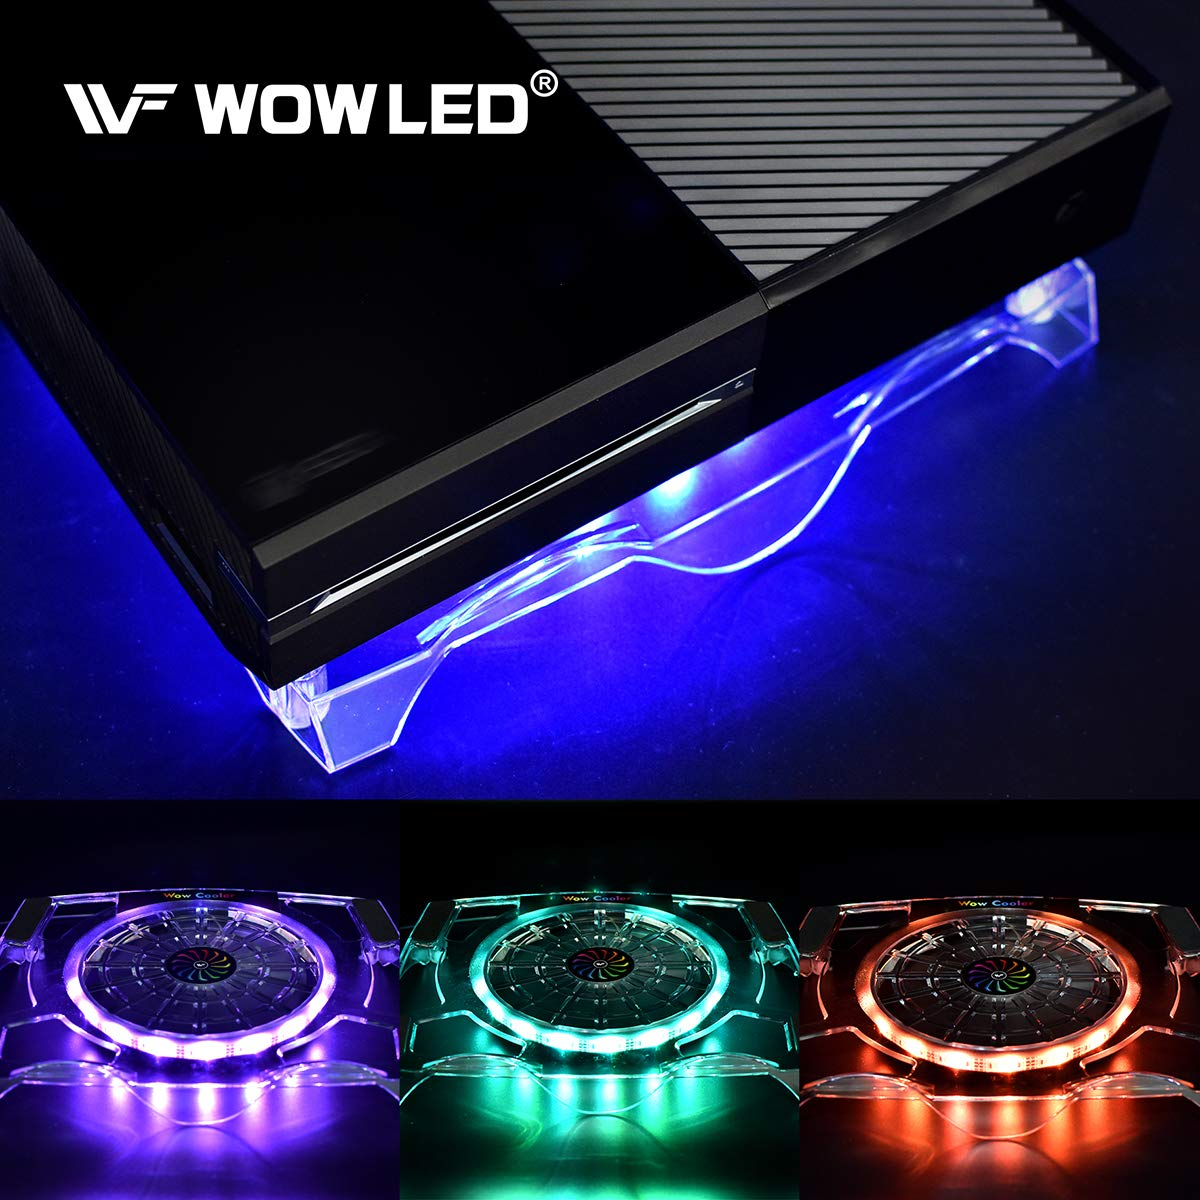 WOWLED Upgrade Sturdy LED Cooling Cooler Fan 3-Key Mini Controller PS4  Accessories Pro Cooling Fan, Xbox One X 360 Playstation 4 Sony Game Console  PC,